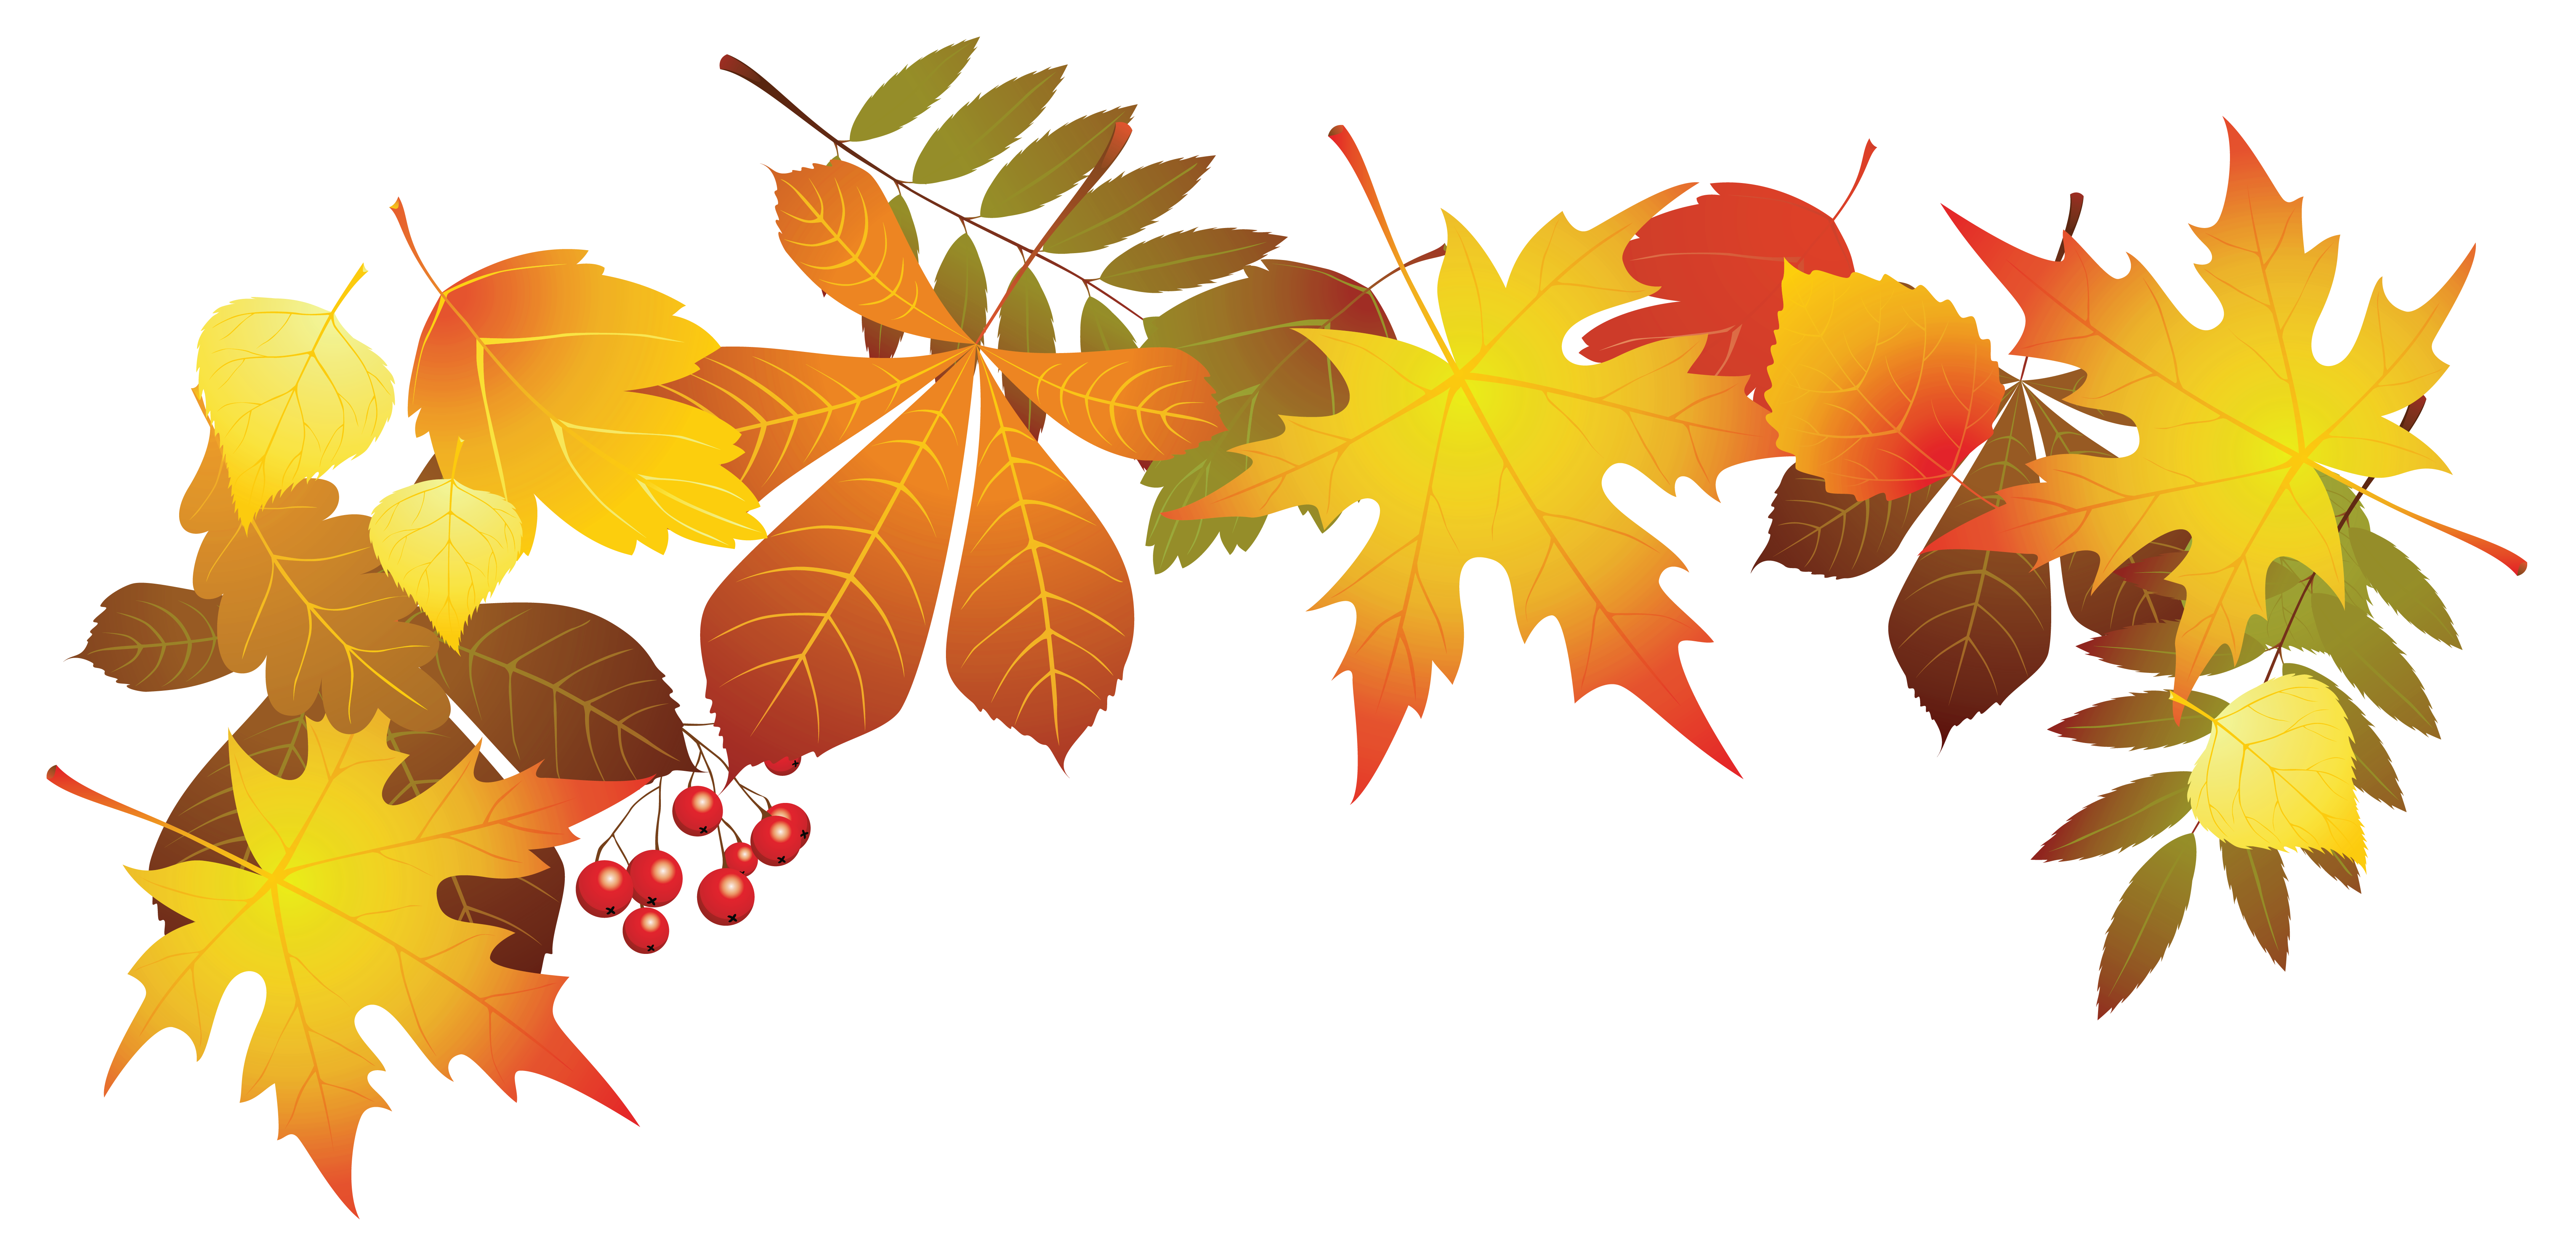 No school thanksgiving clipart image Thanksgiving leaves clipart transparent background image